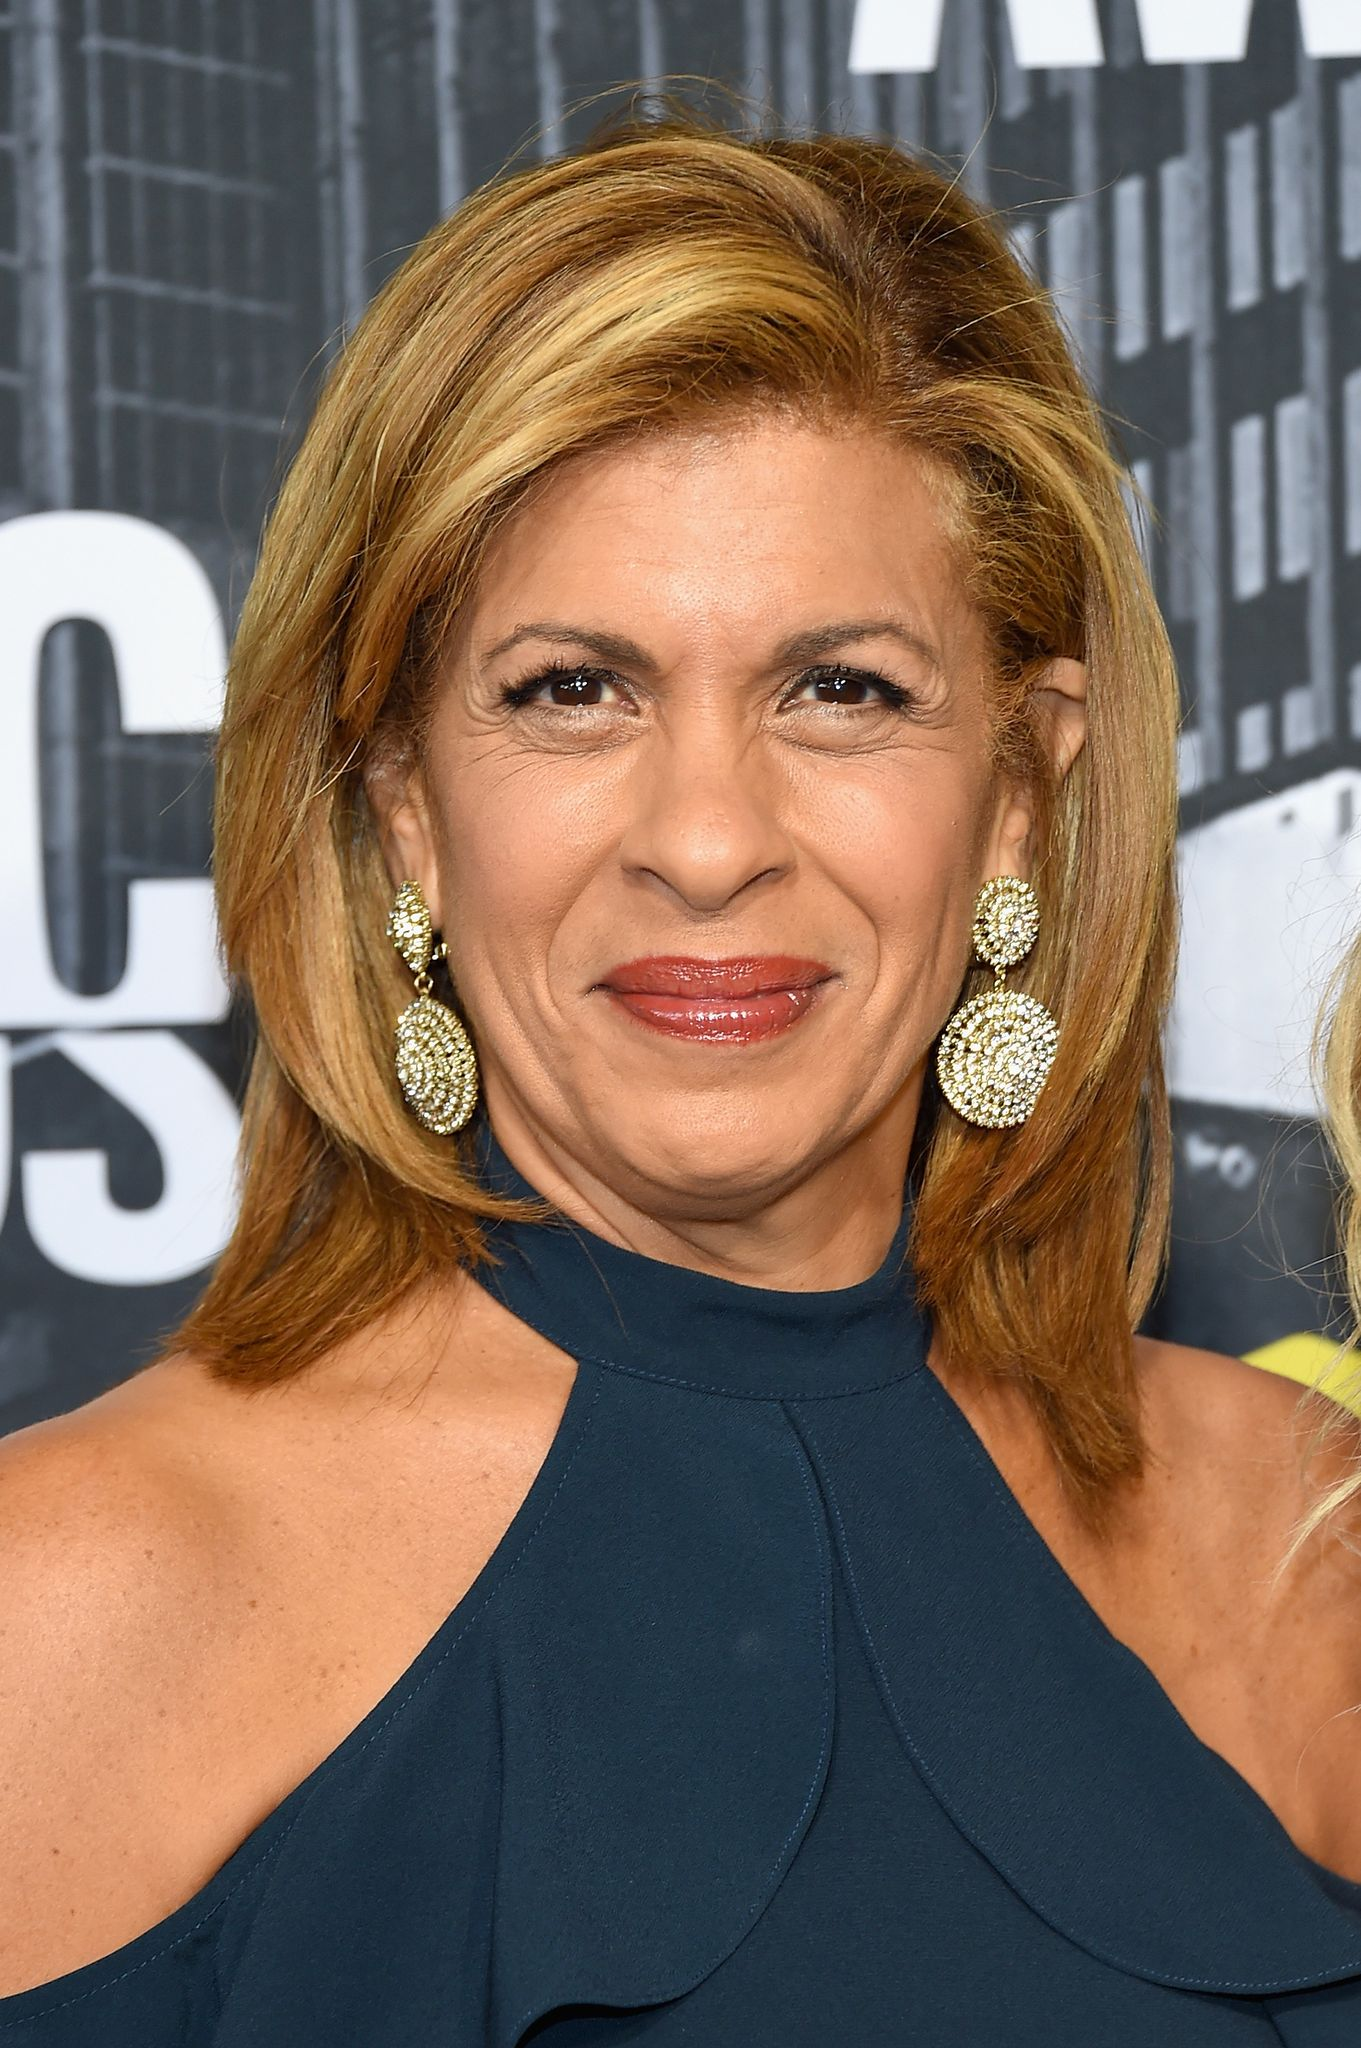 Hoda Kotb at the 2017 CMT Music Awards at the Music City Center on June 7, 2017 in Nashville, Tennessee. | Photo: Getty Images